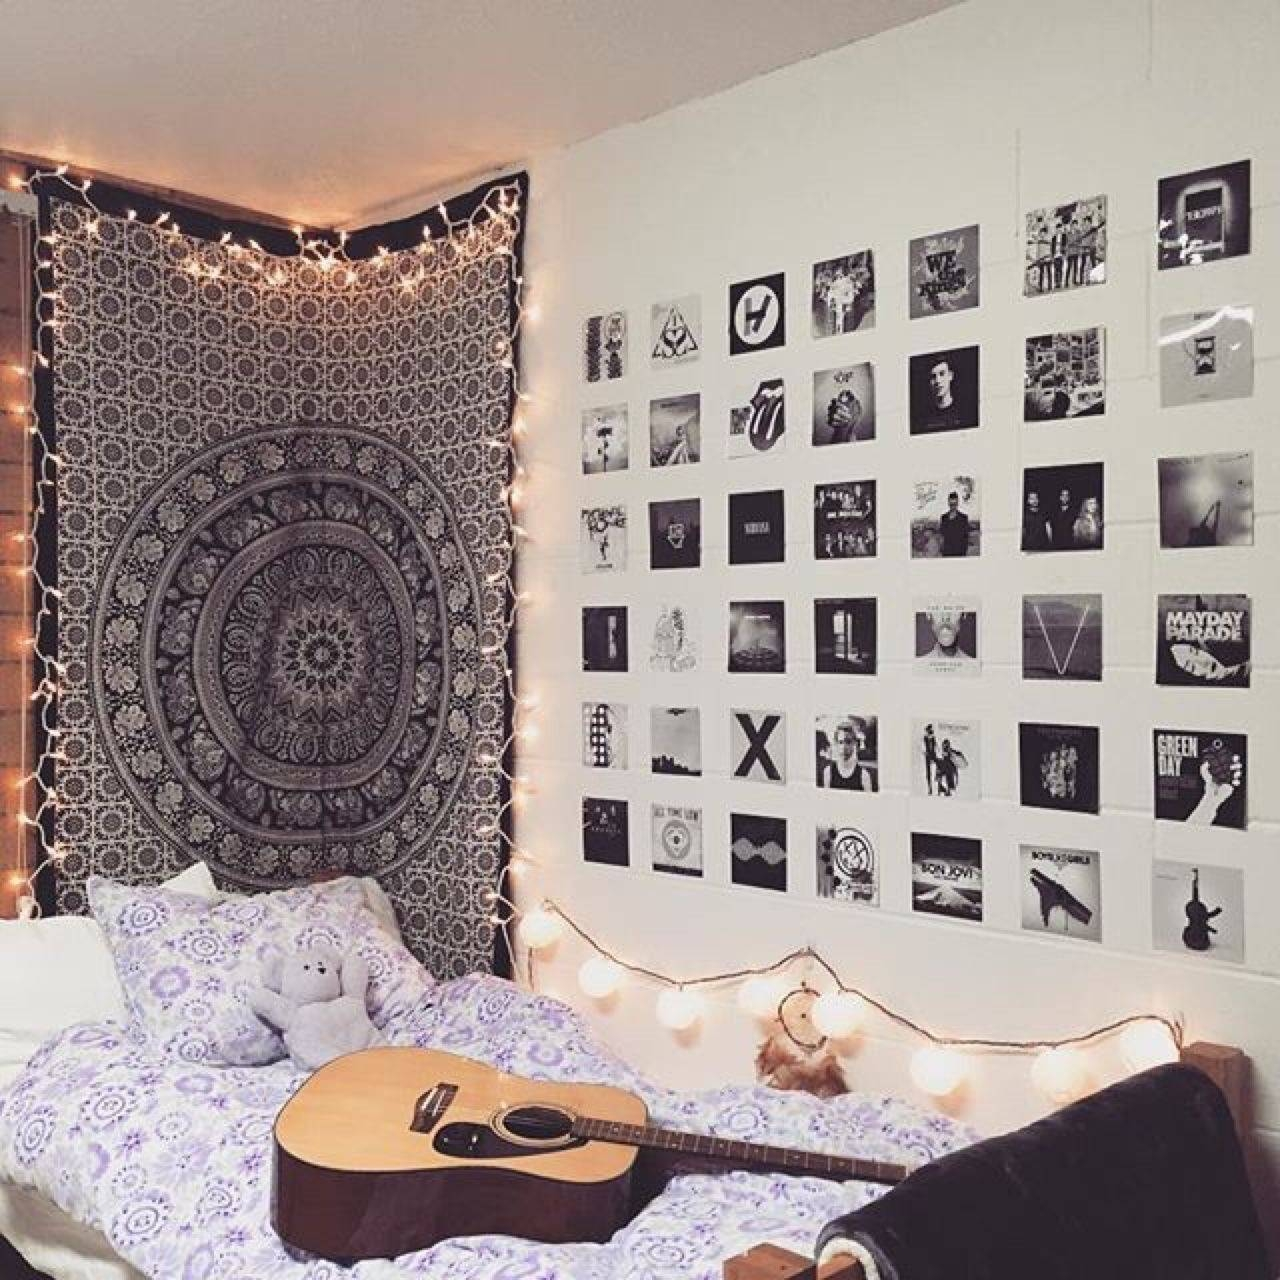 Tumblr Bedroom Decor Awesome 32 Awesome Wall Art Tumblr With Regard To Best And Newest Tumblr Wall Art (Gallery 19 of 20)